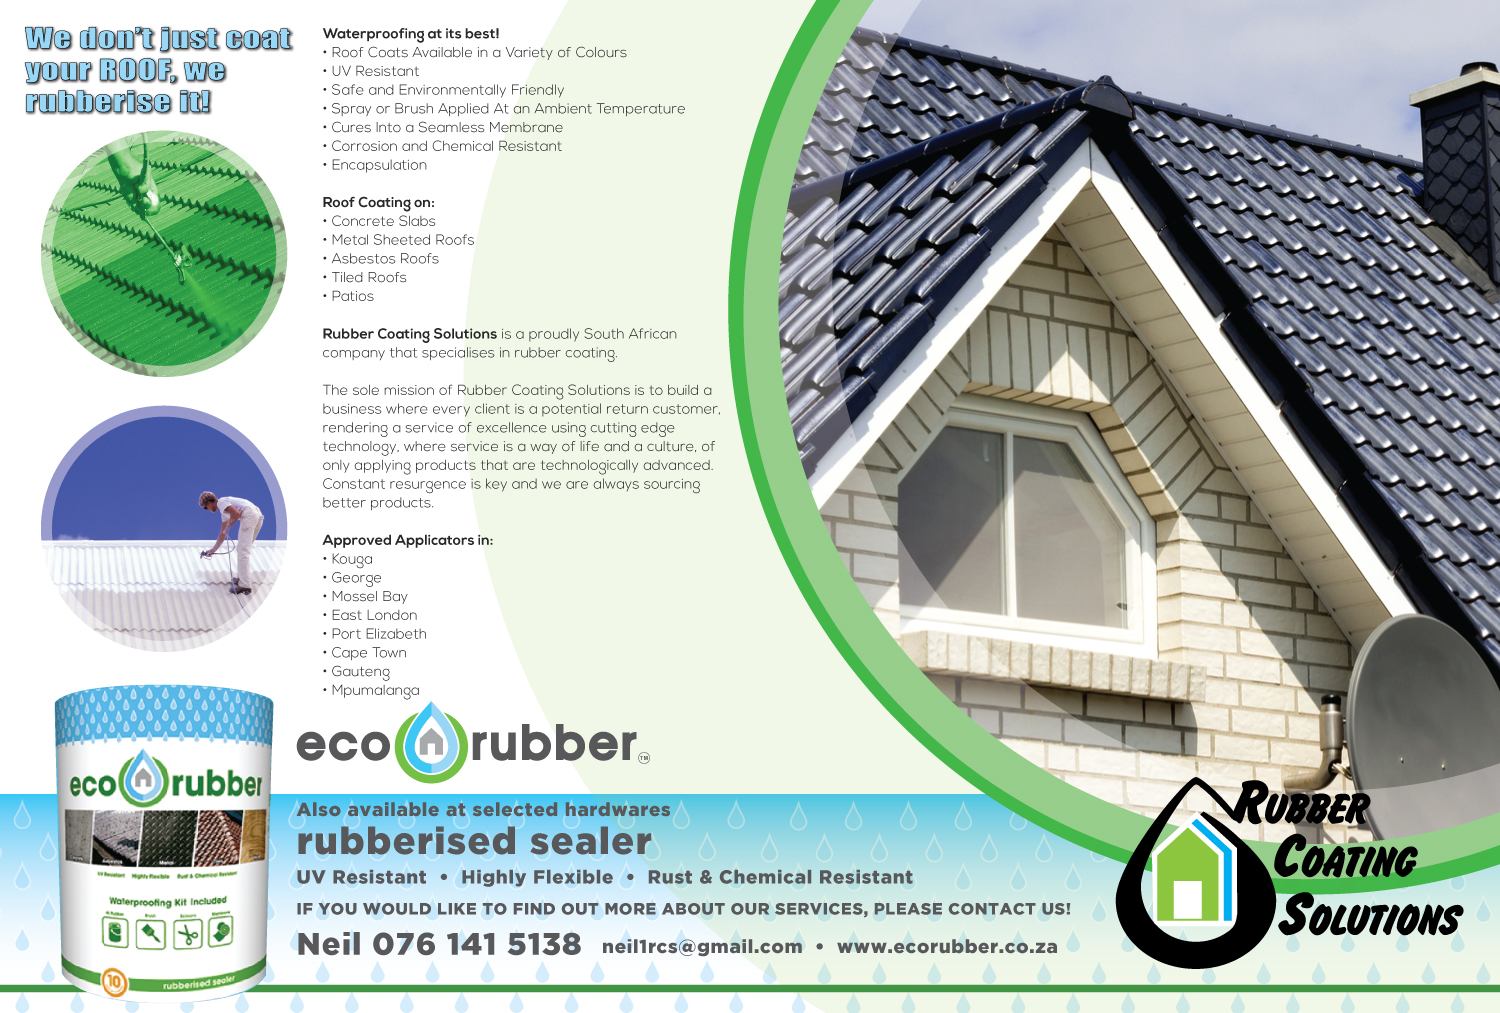 Eco Rubber T A Rubber Coating Jeffreys Bay Roofing